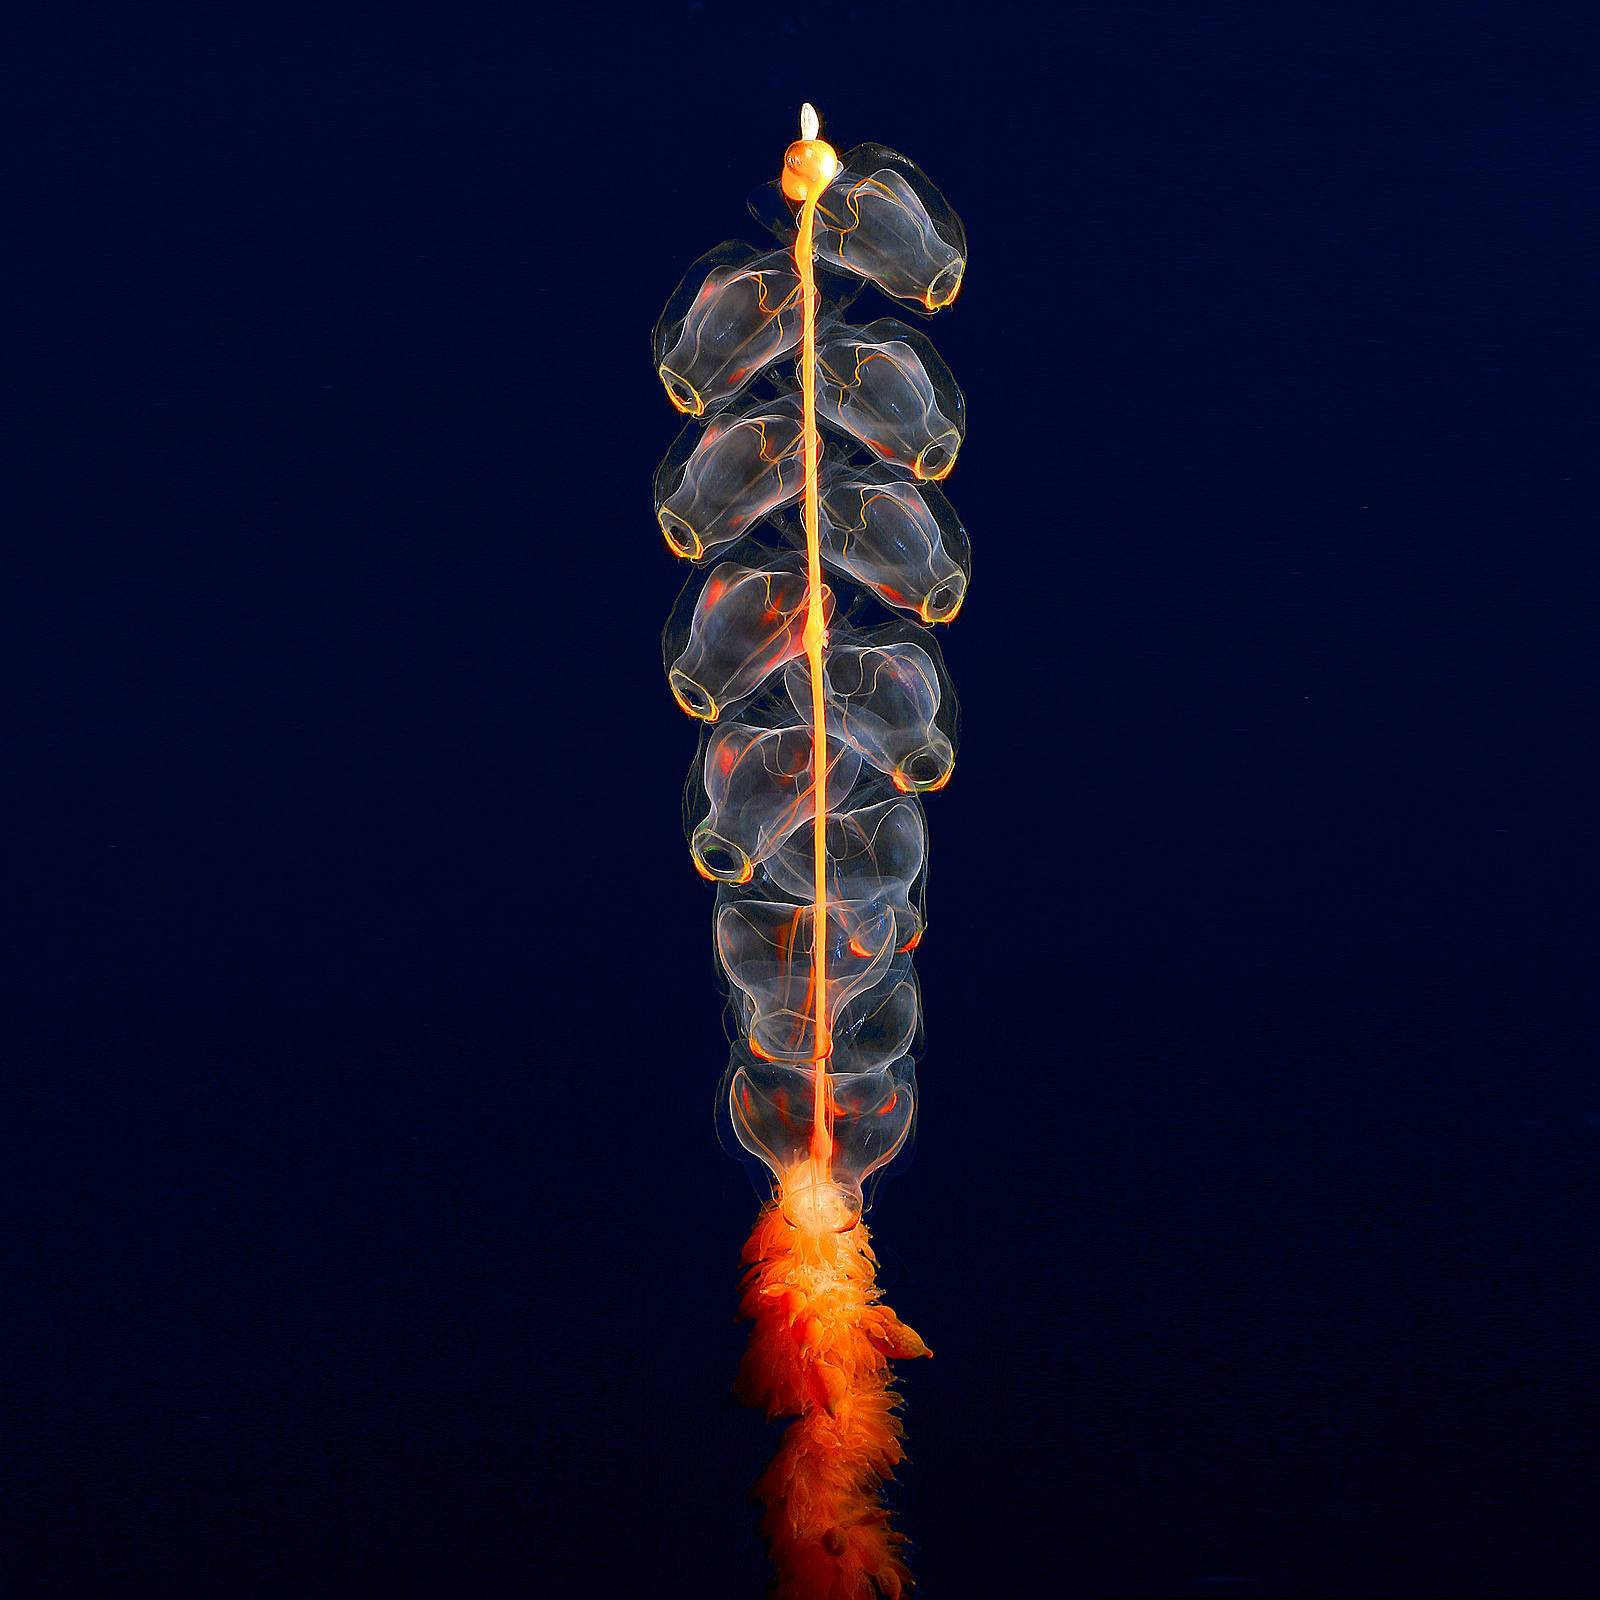 Marrus orthocanna, found in the deepest depths of the Arctic ocean.